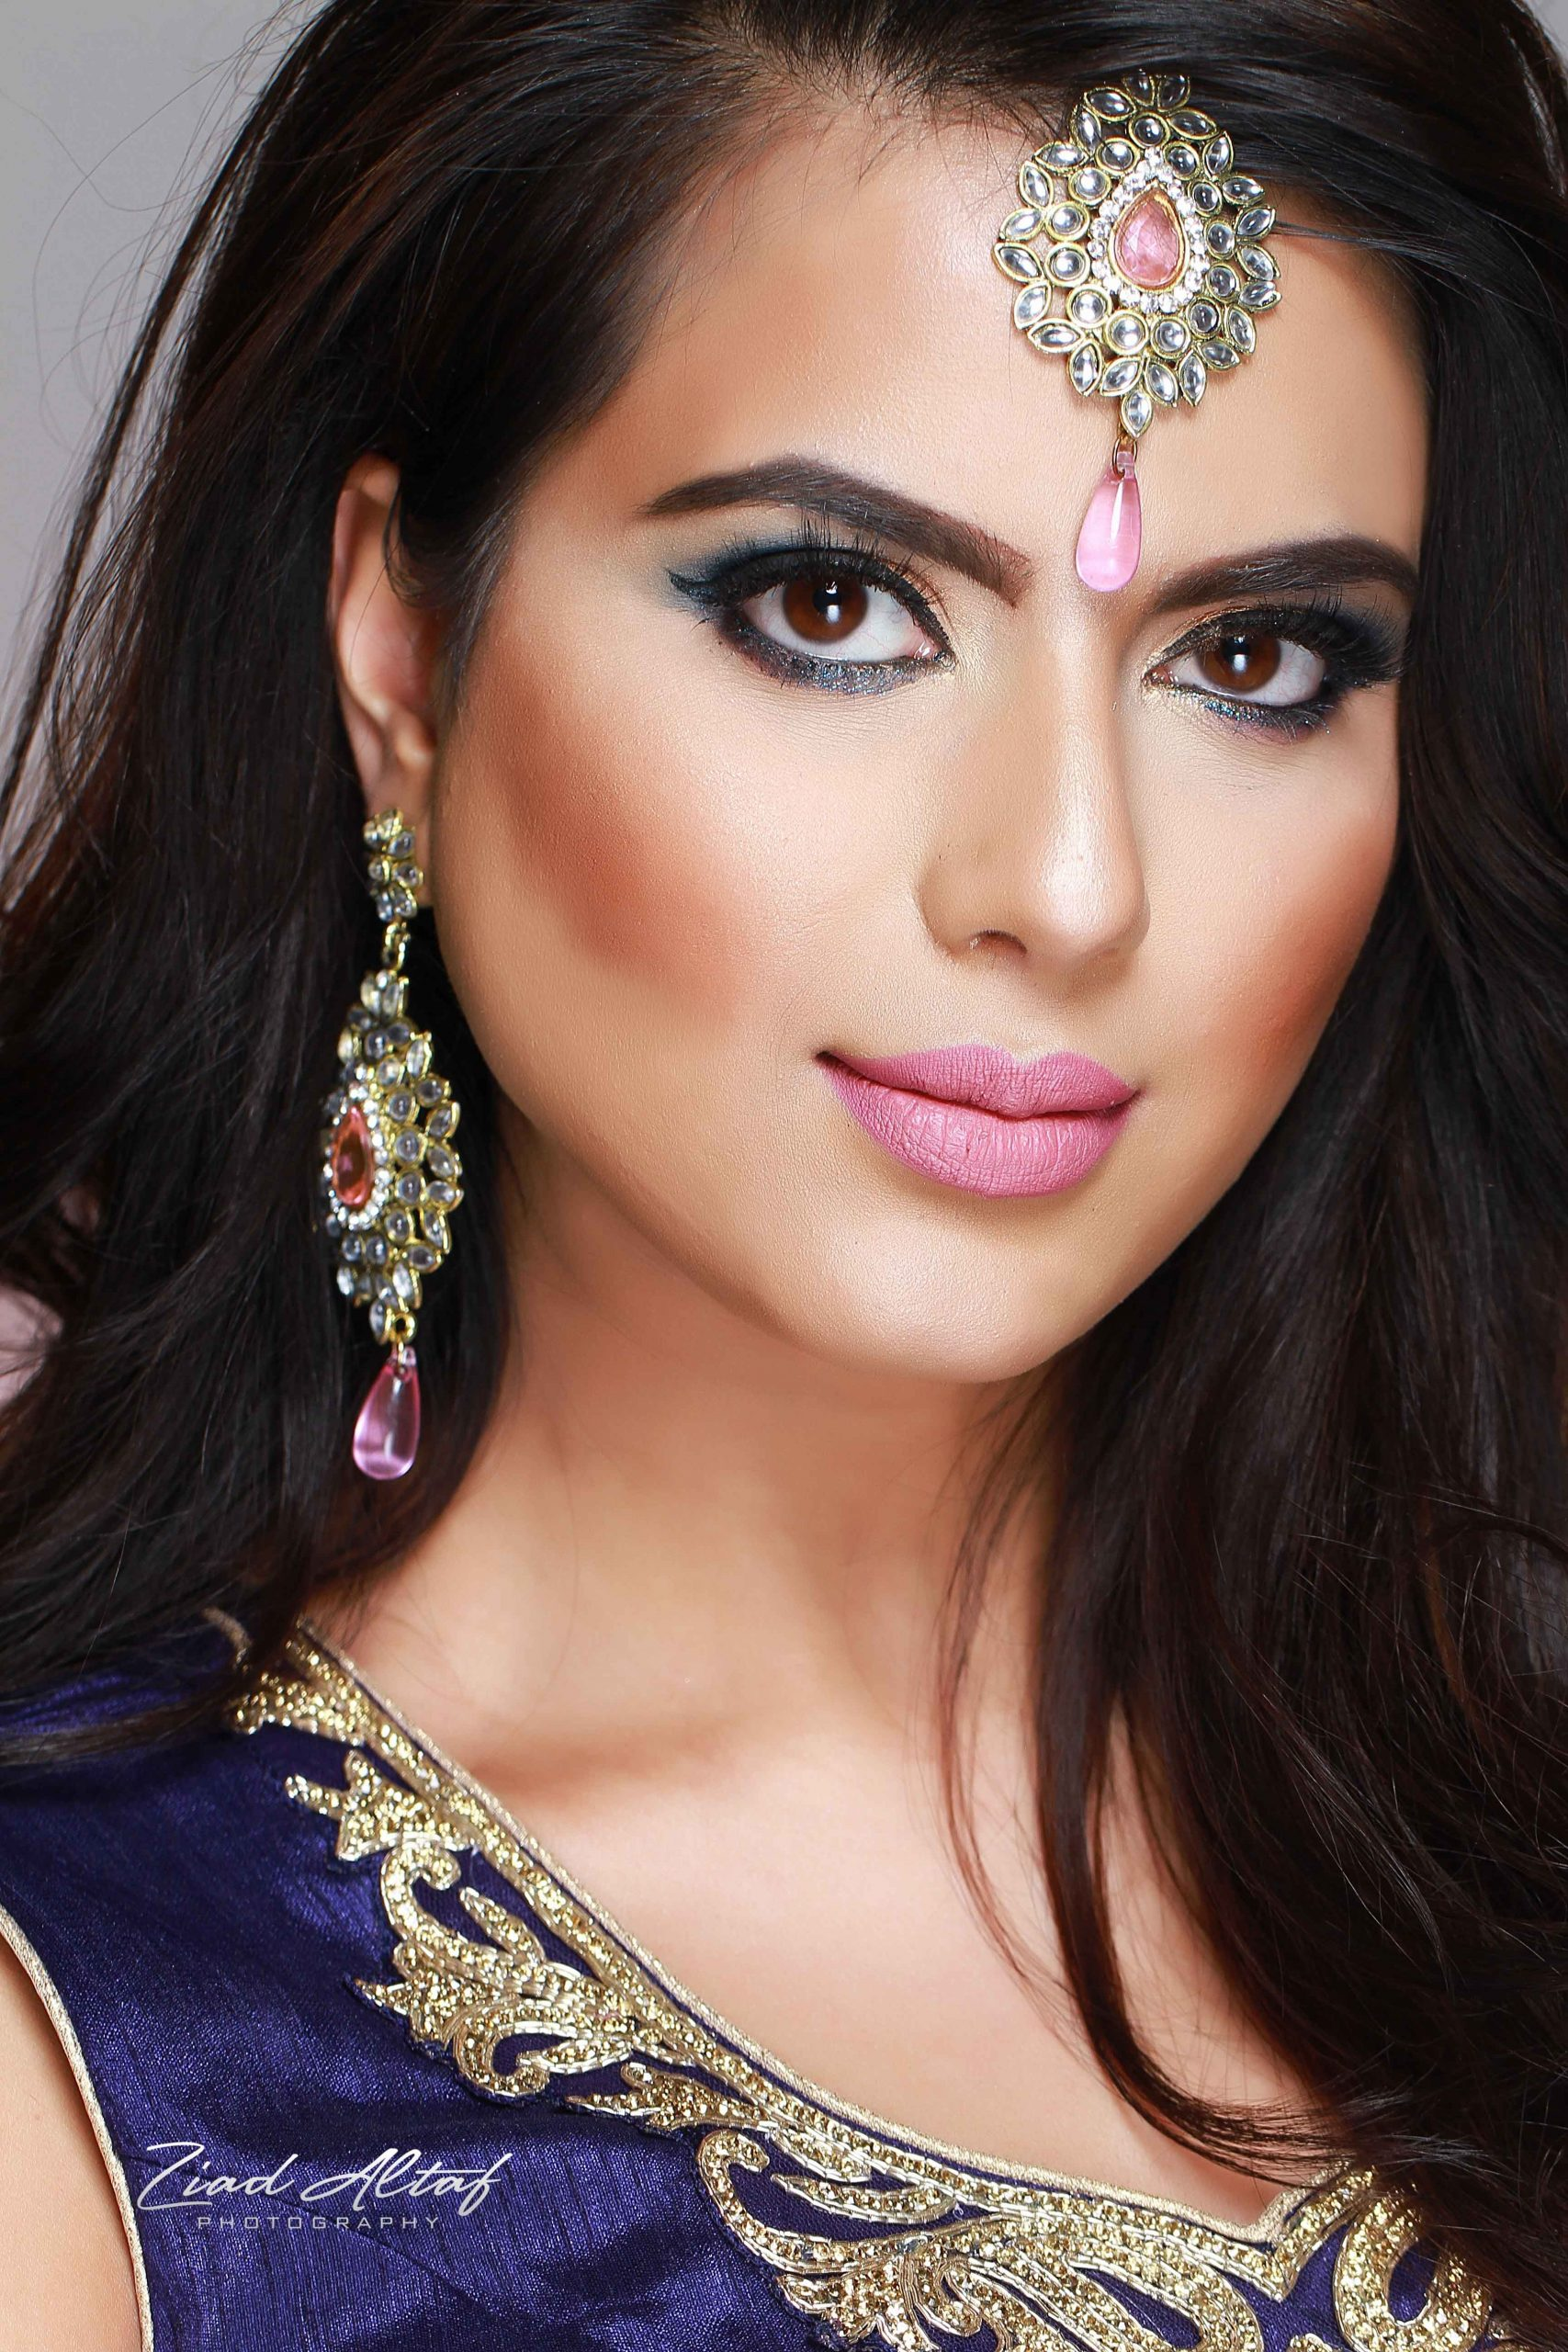 Asian Bridal Makeup Courses In Uk.fully Accredited.now regarding Indian Hair And Makeup Kent